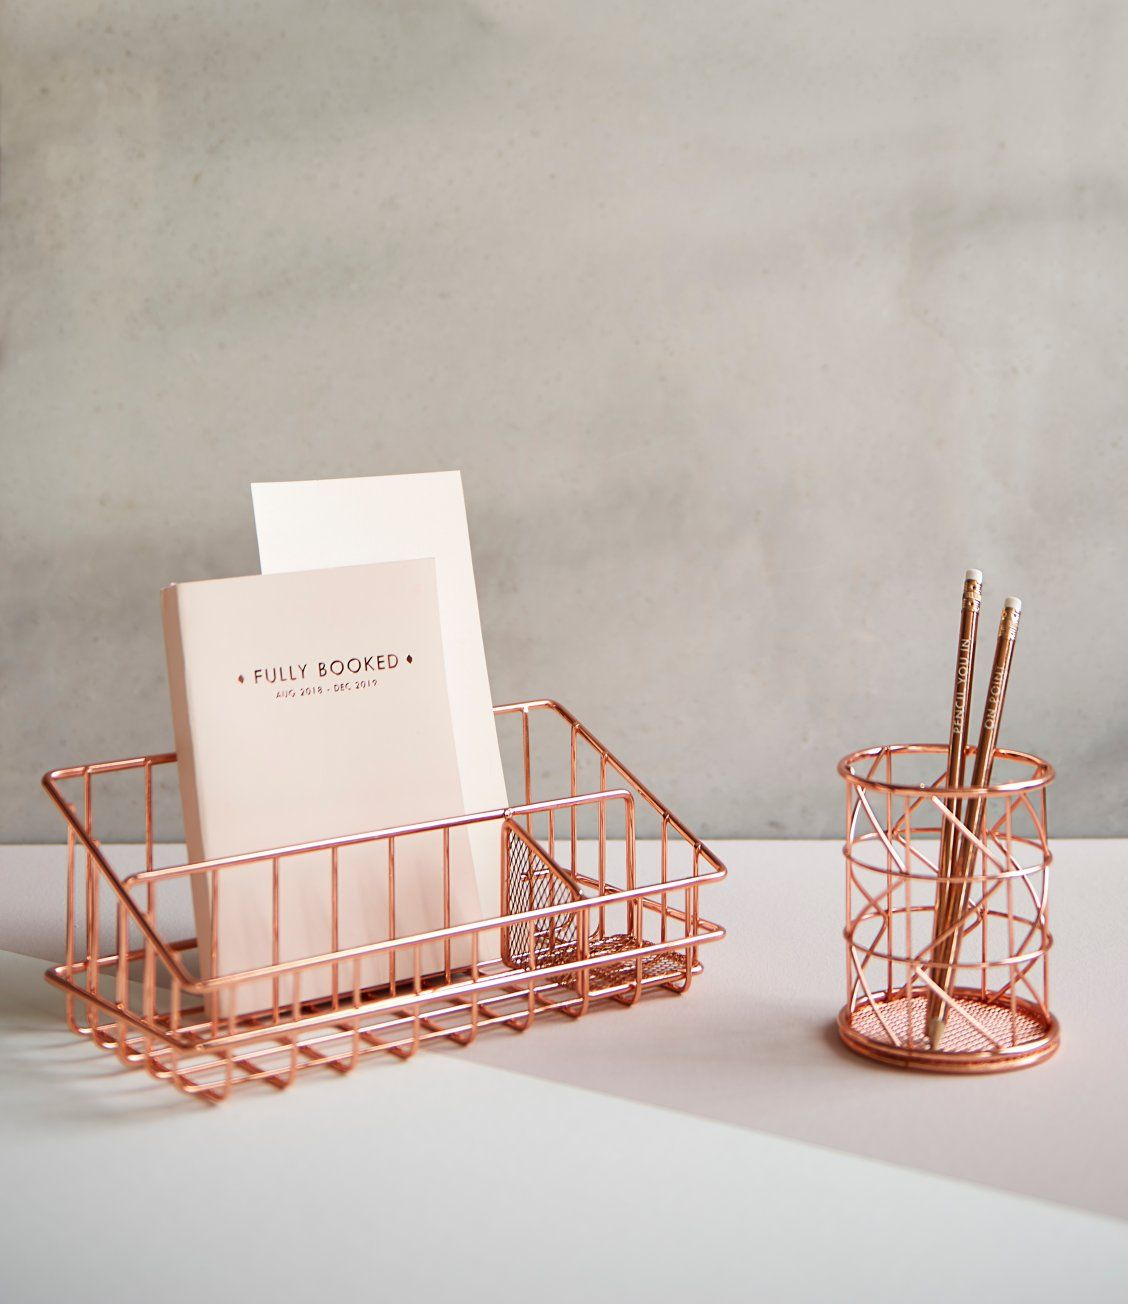 Keeping tidy never got this chic! Our rose gold finish pen pot and